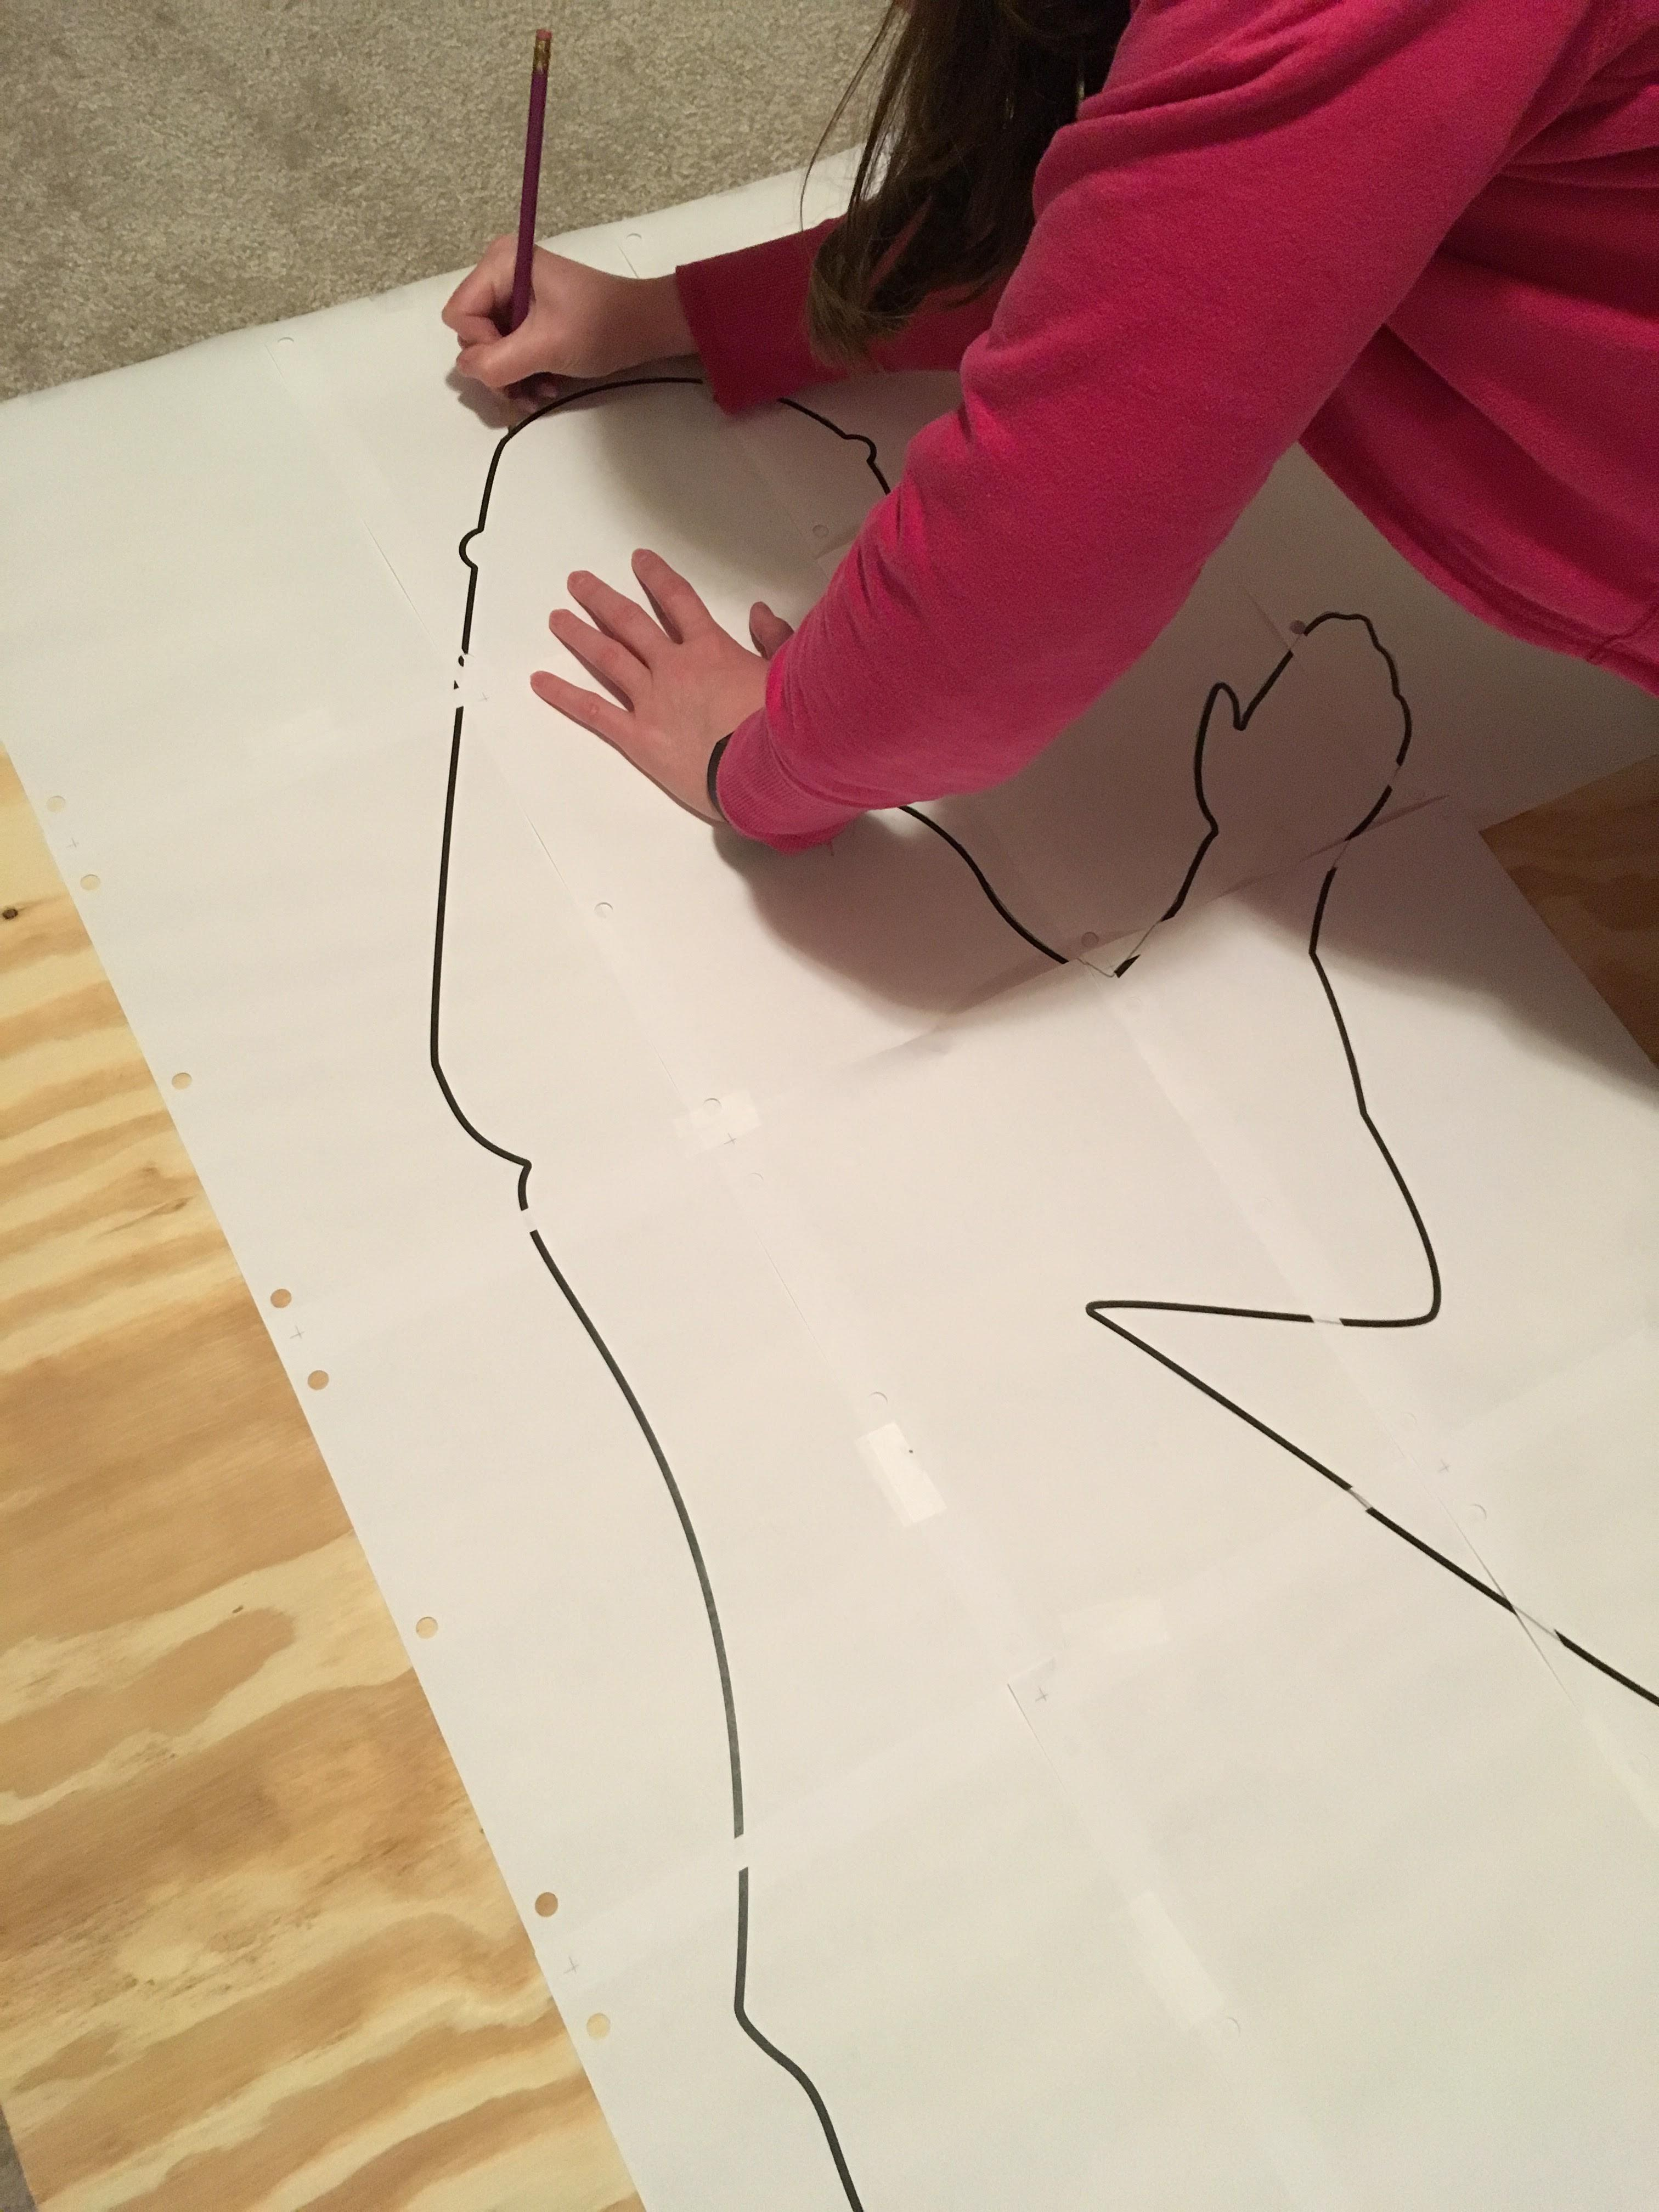 Tracing A Nativity Scene + Cook Portable Warehouses